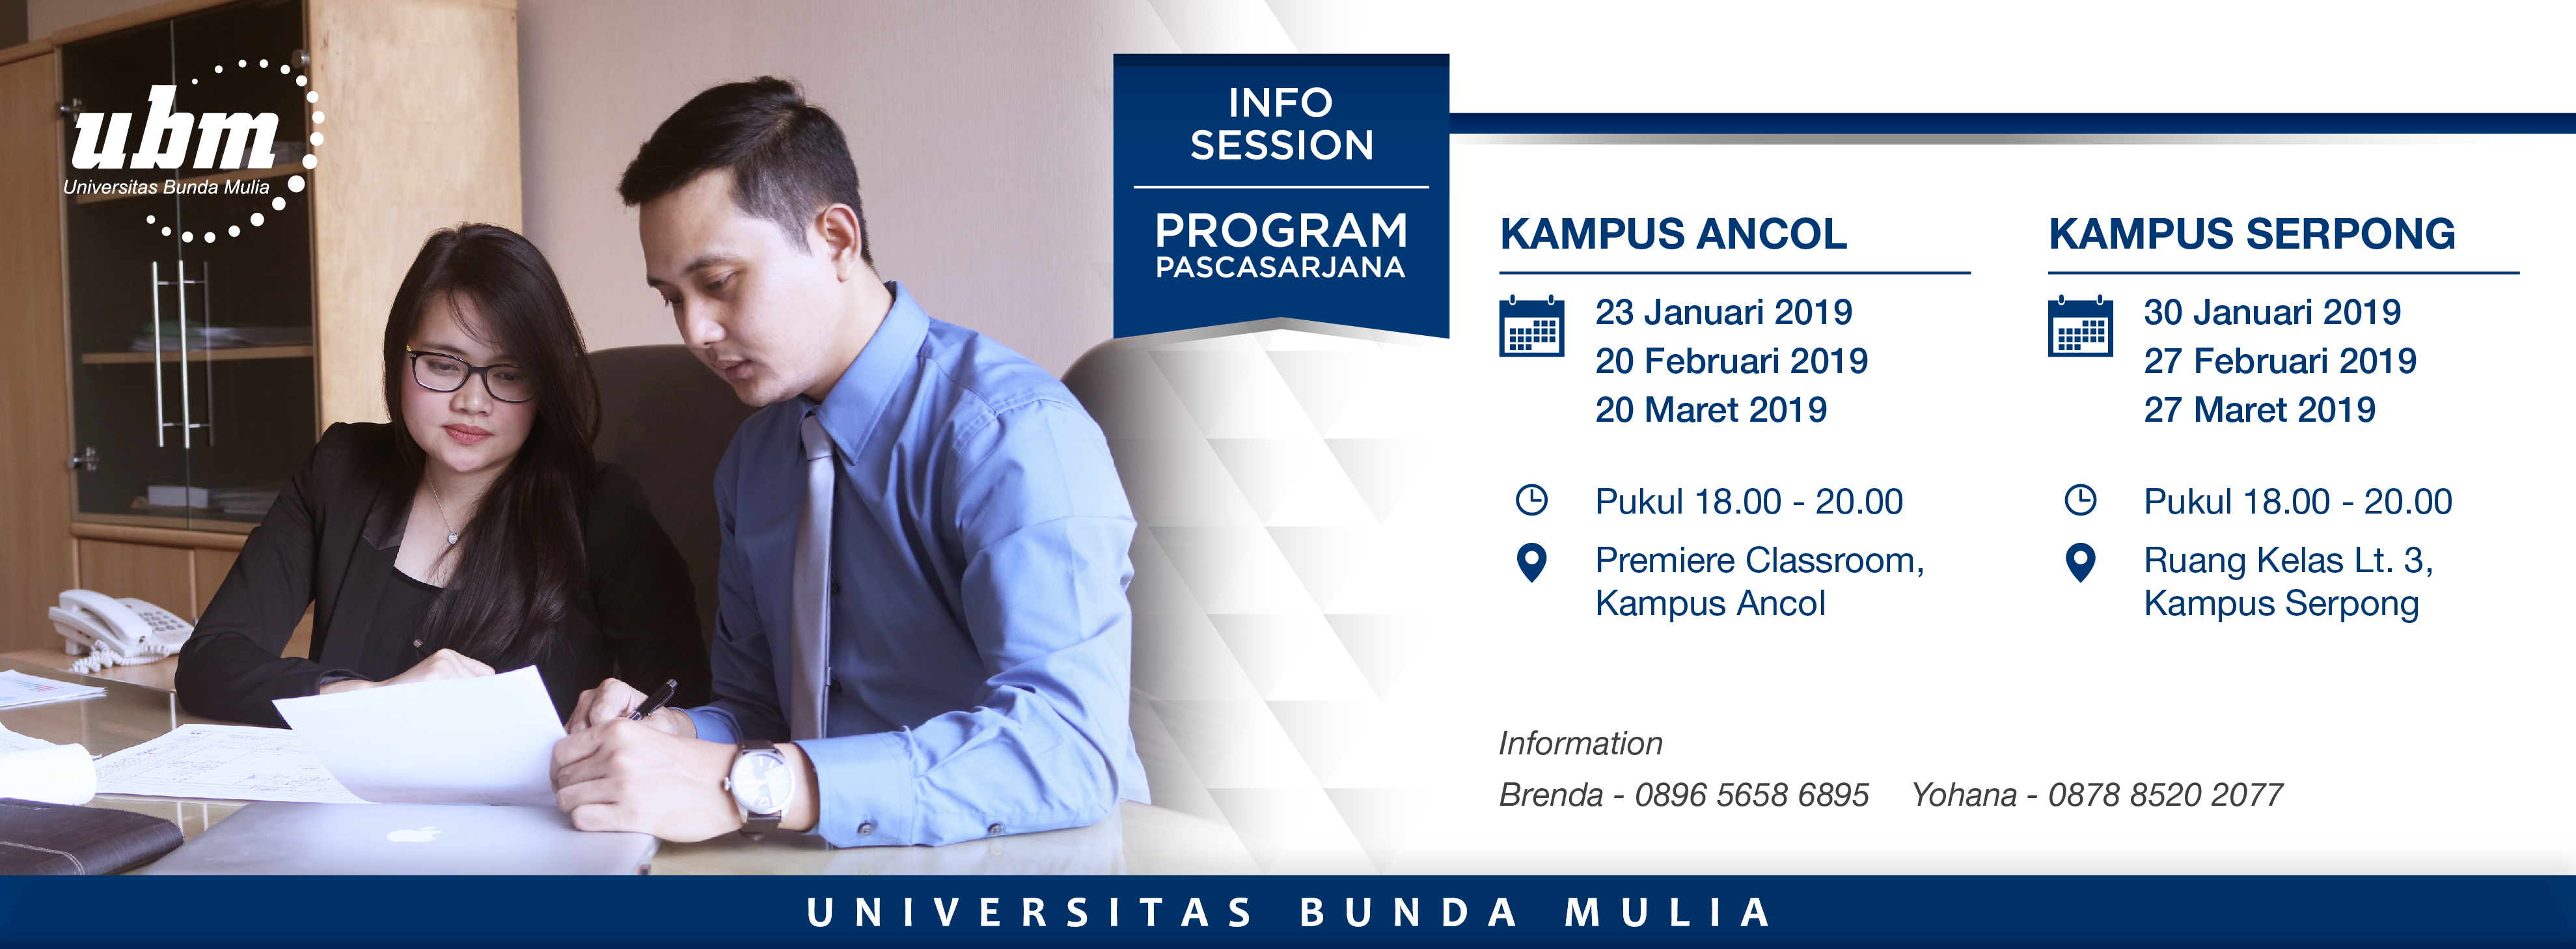 Info-Session-S2-04